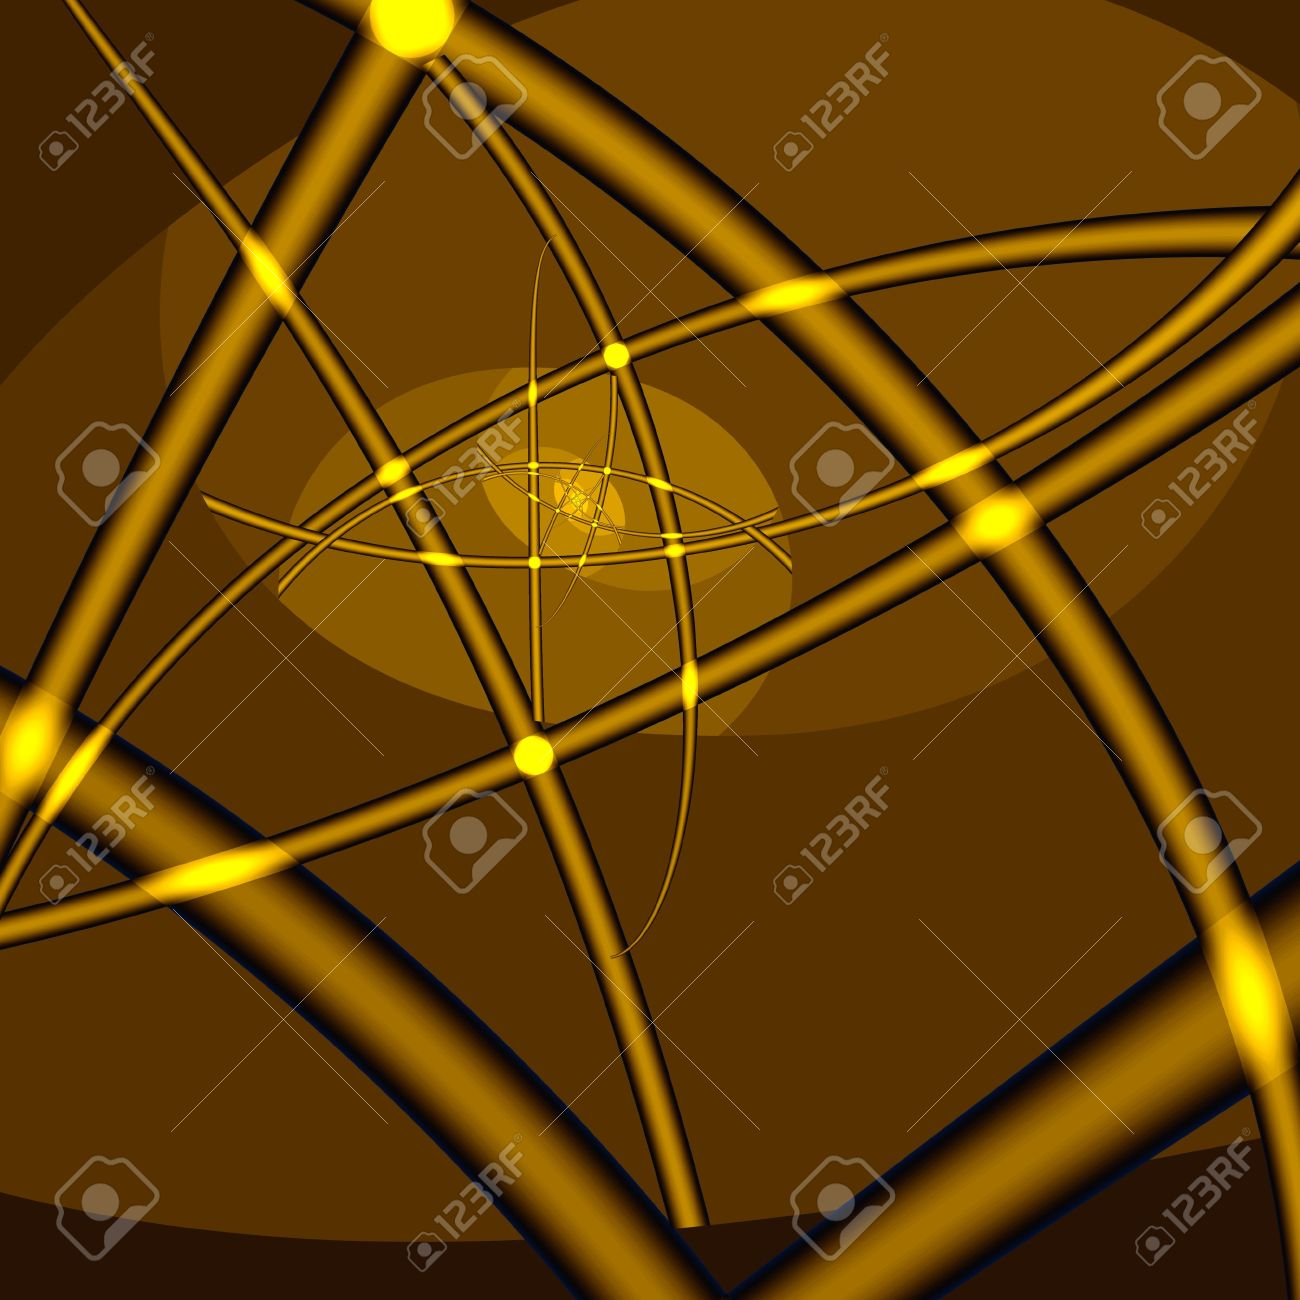 Golden infinity. Yellow crossed lines and dots on brown background. Computer-generated image Stock Photo - 5384332